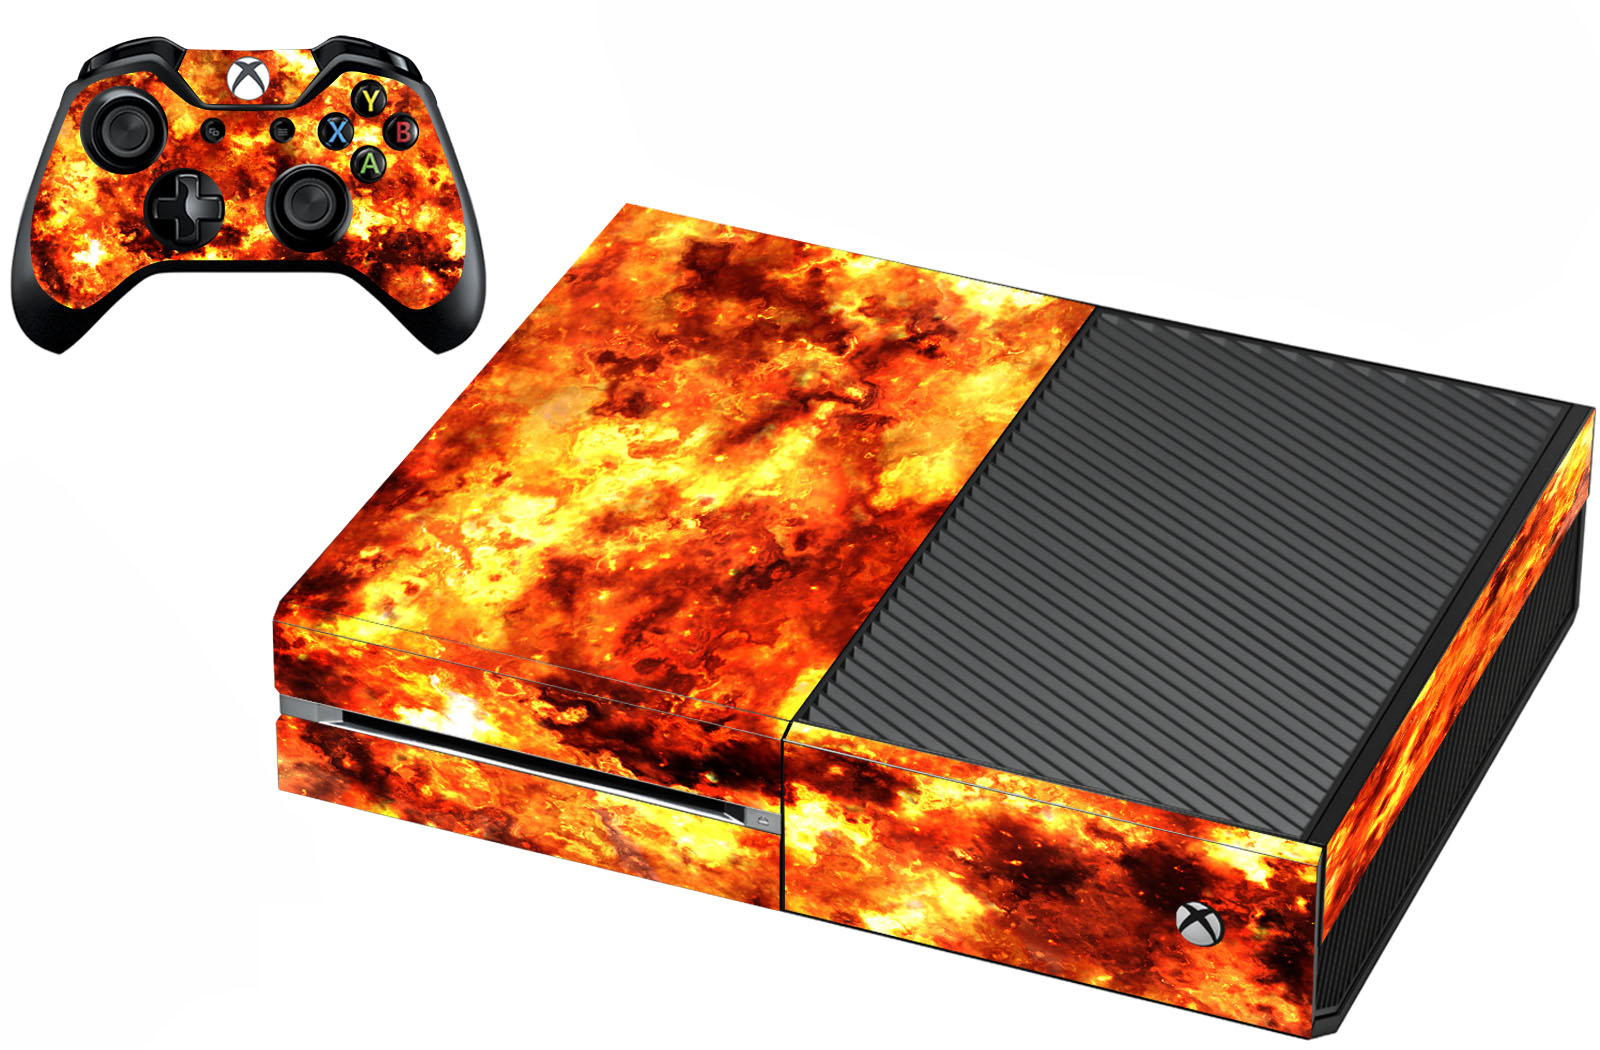 VWAQ Xbox One Fire Skin For Console And Controller Flame Skin For Xbox One - XGC3 - VWAQ Vinyl Wall Art Quotes and Prints